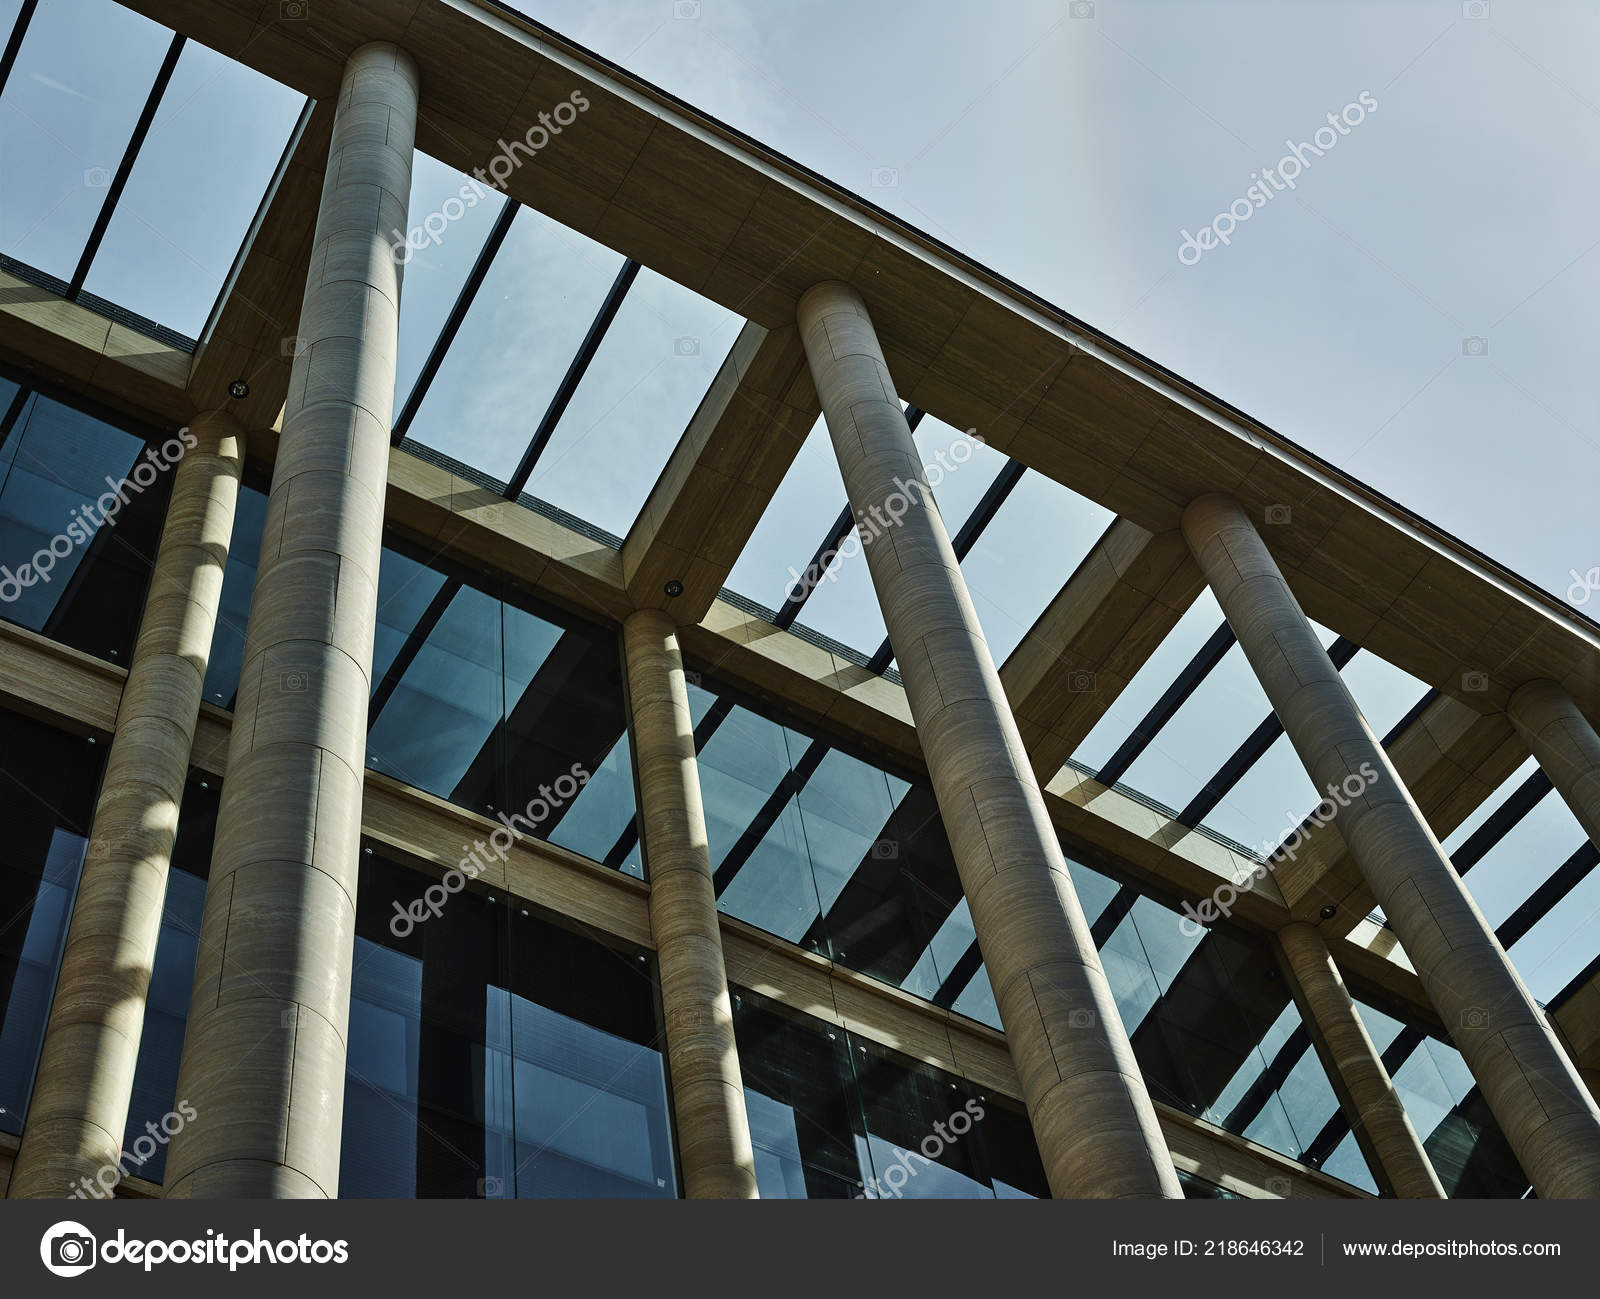 Glass Roof House Design Shot Modern Architectural Building Glass Roof Stone Pillars Design Stock Photo C Main Comebackimages Com 218646342